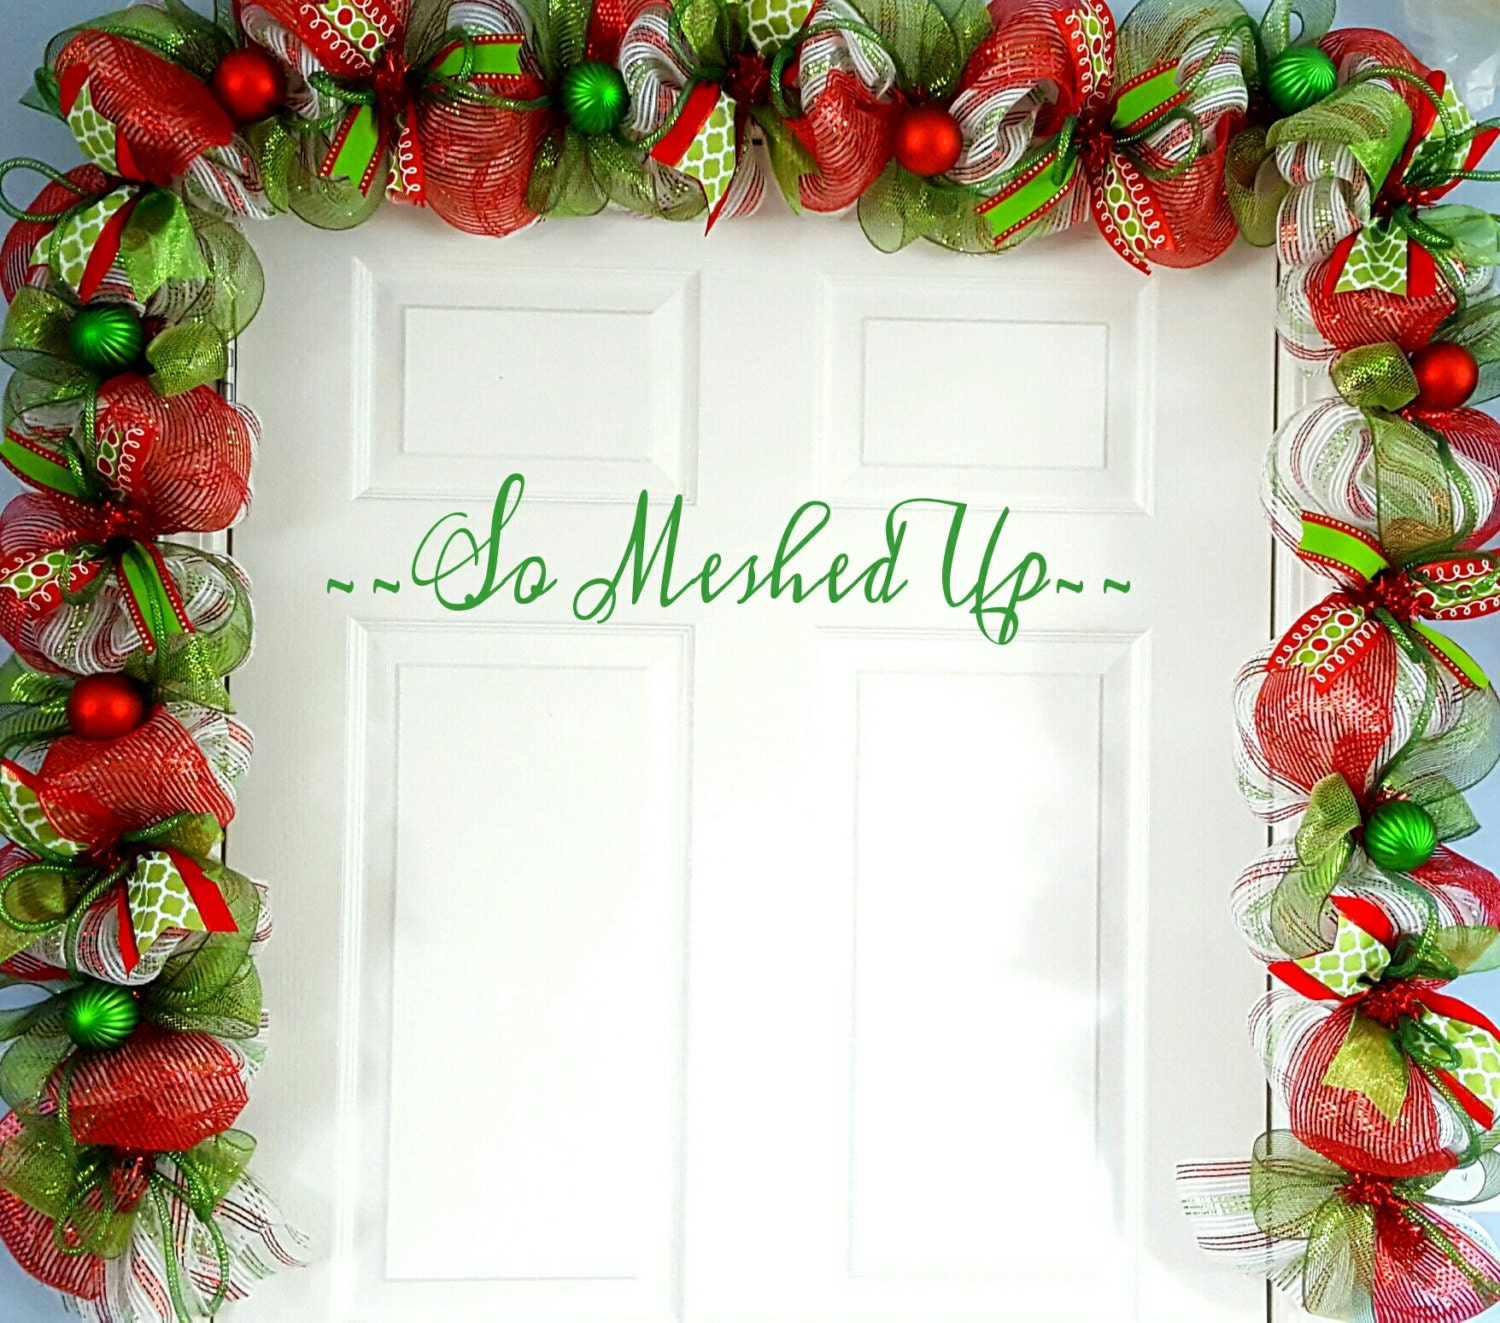 10 Whimsical Christmas Deco Mesh Garland In Green Apple